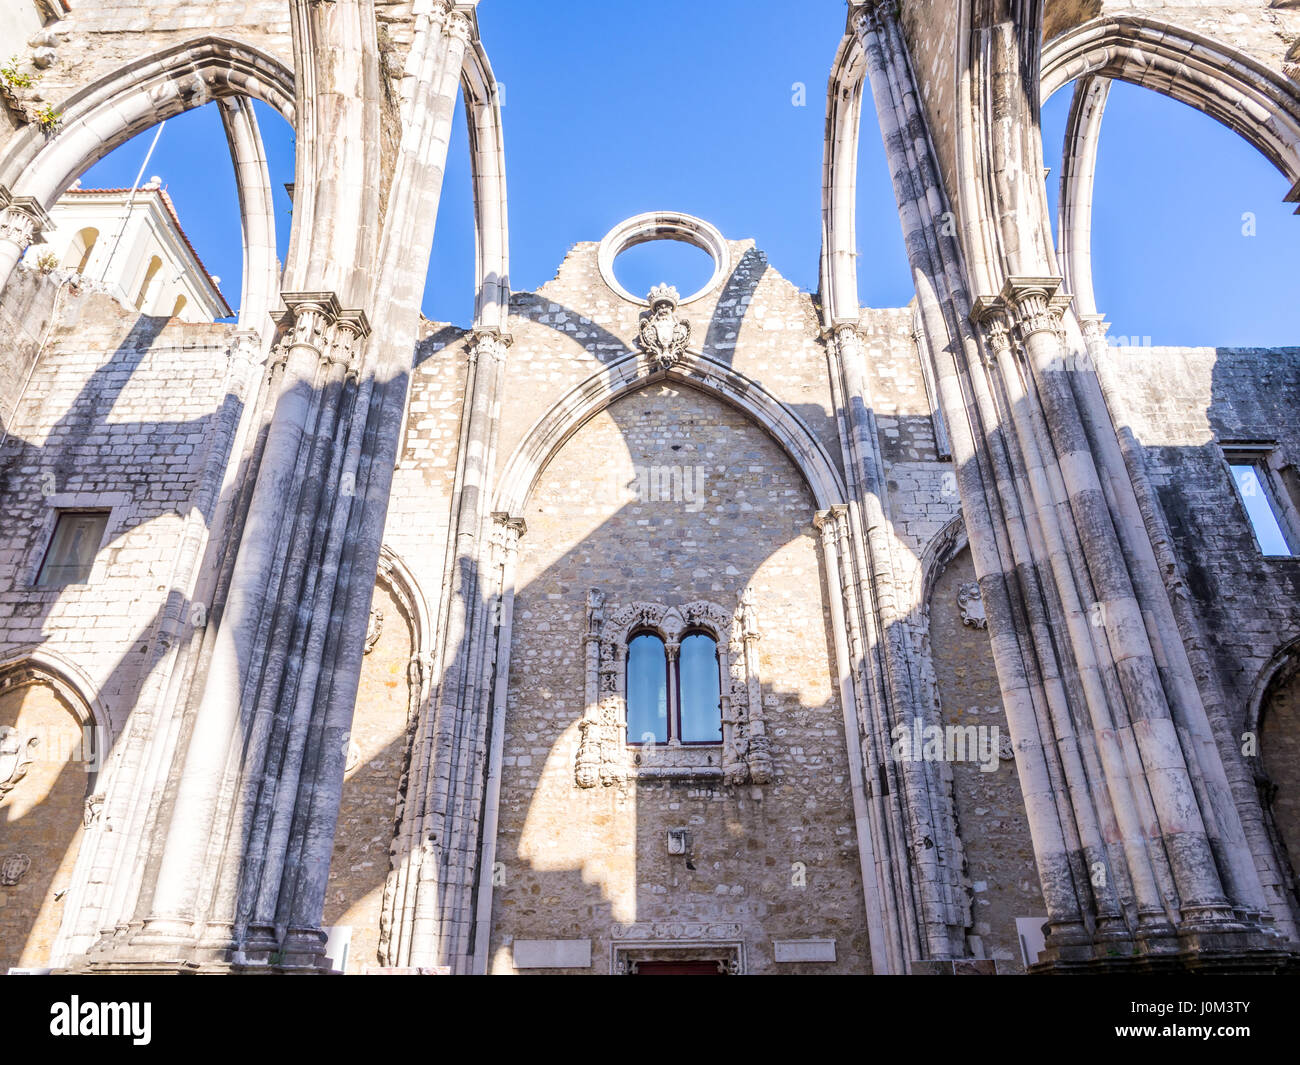 Convent of Our Lady of Mount Carmel (Portuguese: Convento da Ordem do Carmo) in Lisbon, Portugal - Stock Image